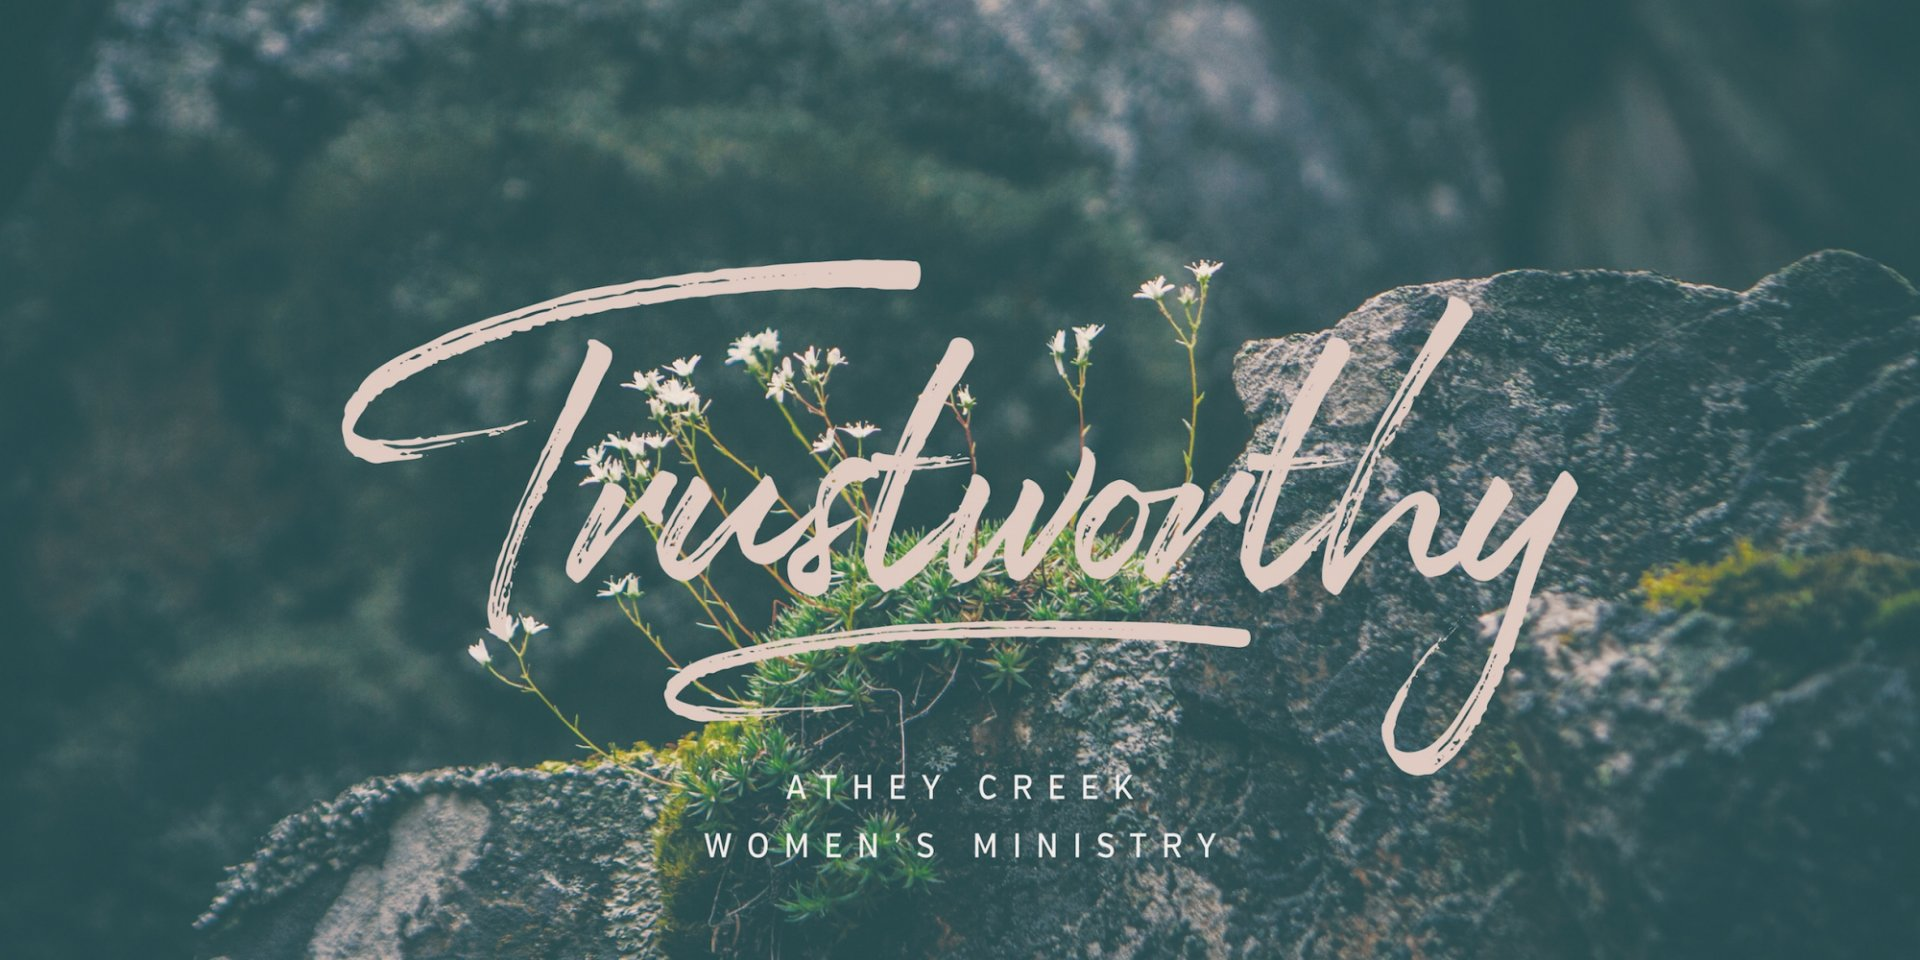 Poster forTrustworthy | Never Thirst Again